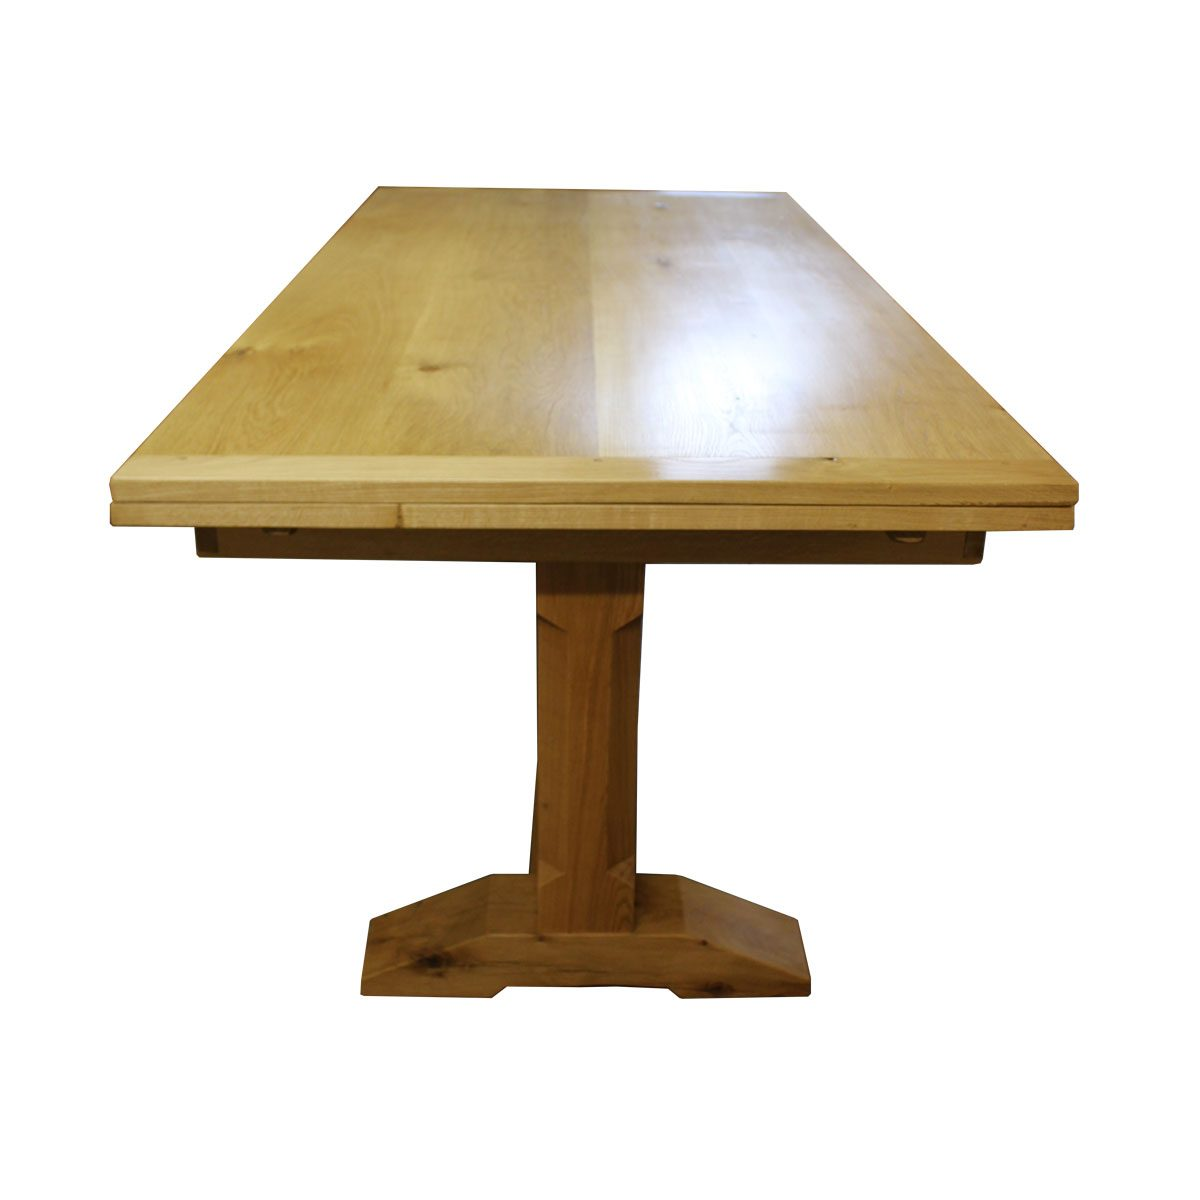 "Bespoke 5"" Chamfered Leg Draw-Leaf Table Handcrafted in Suffolk"